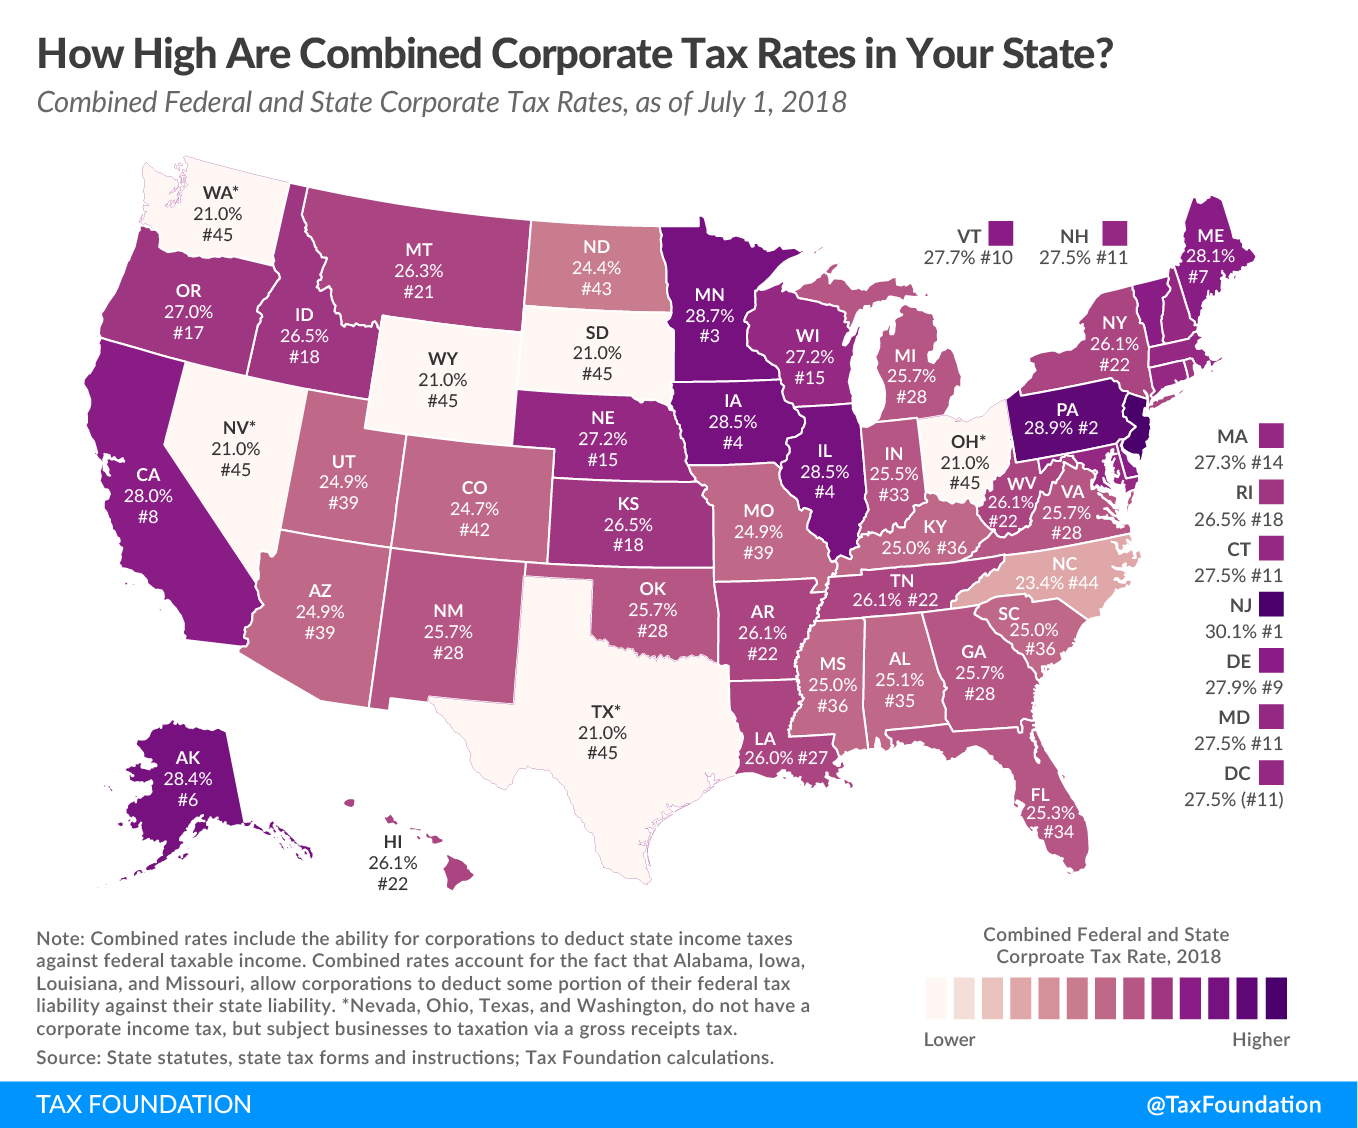 Report: R I  has lowest combined corporate tax rate in New